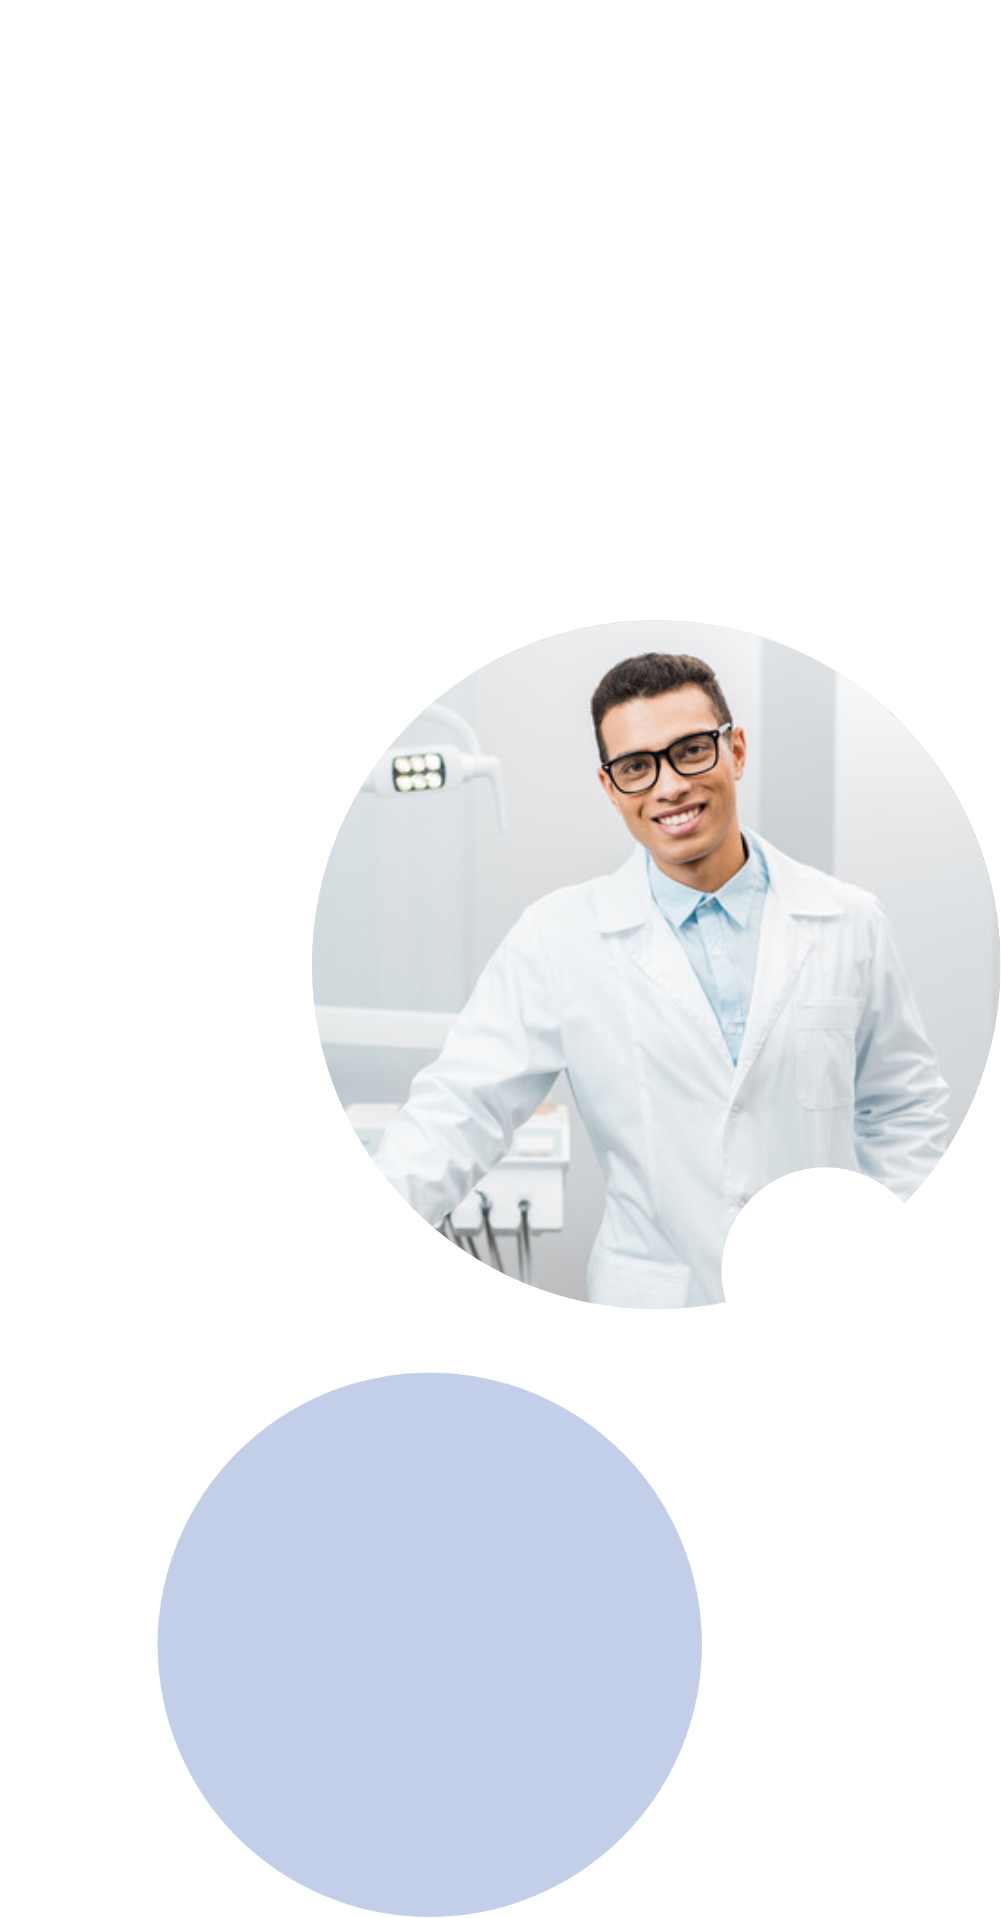 dental school application consulting services